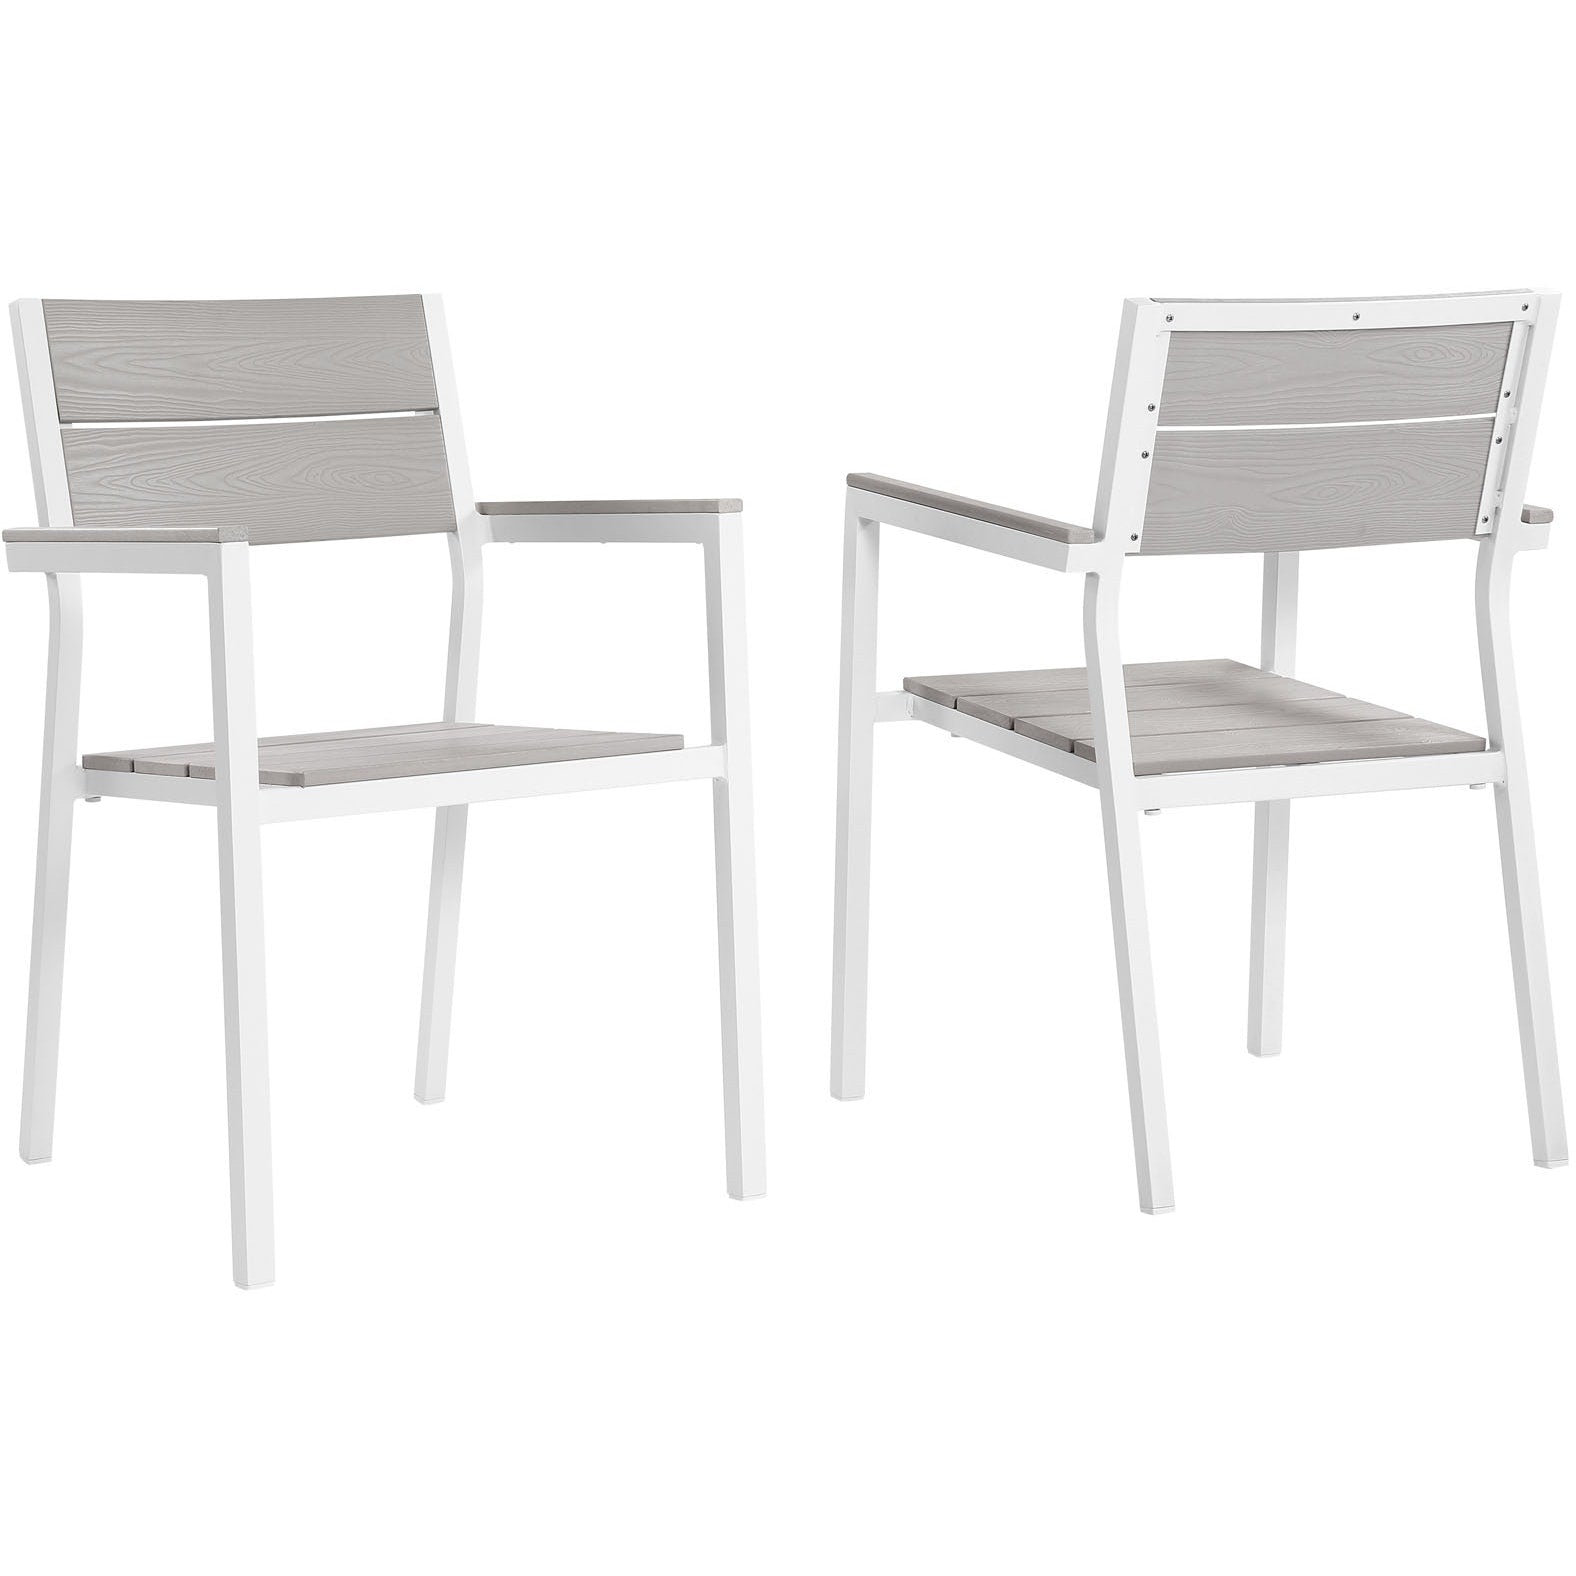 Maine Dining Armchair Outdoor Patio Set of 2 - White Light Gray